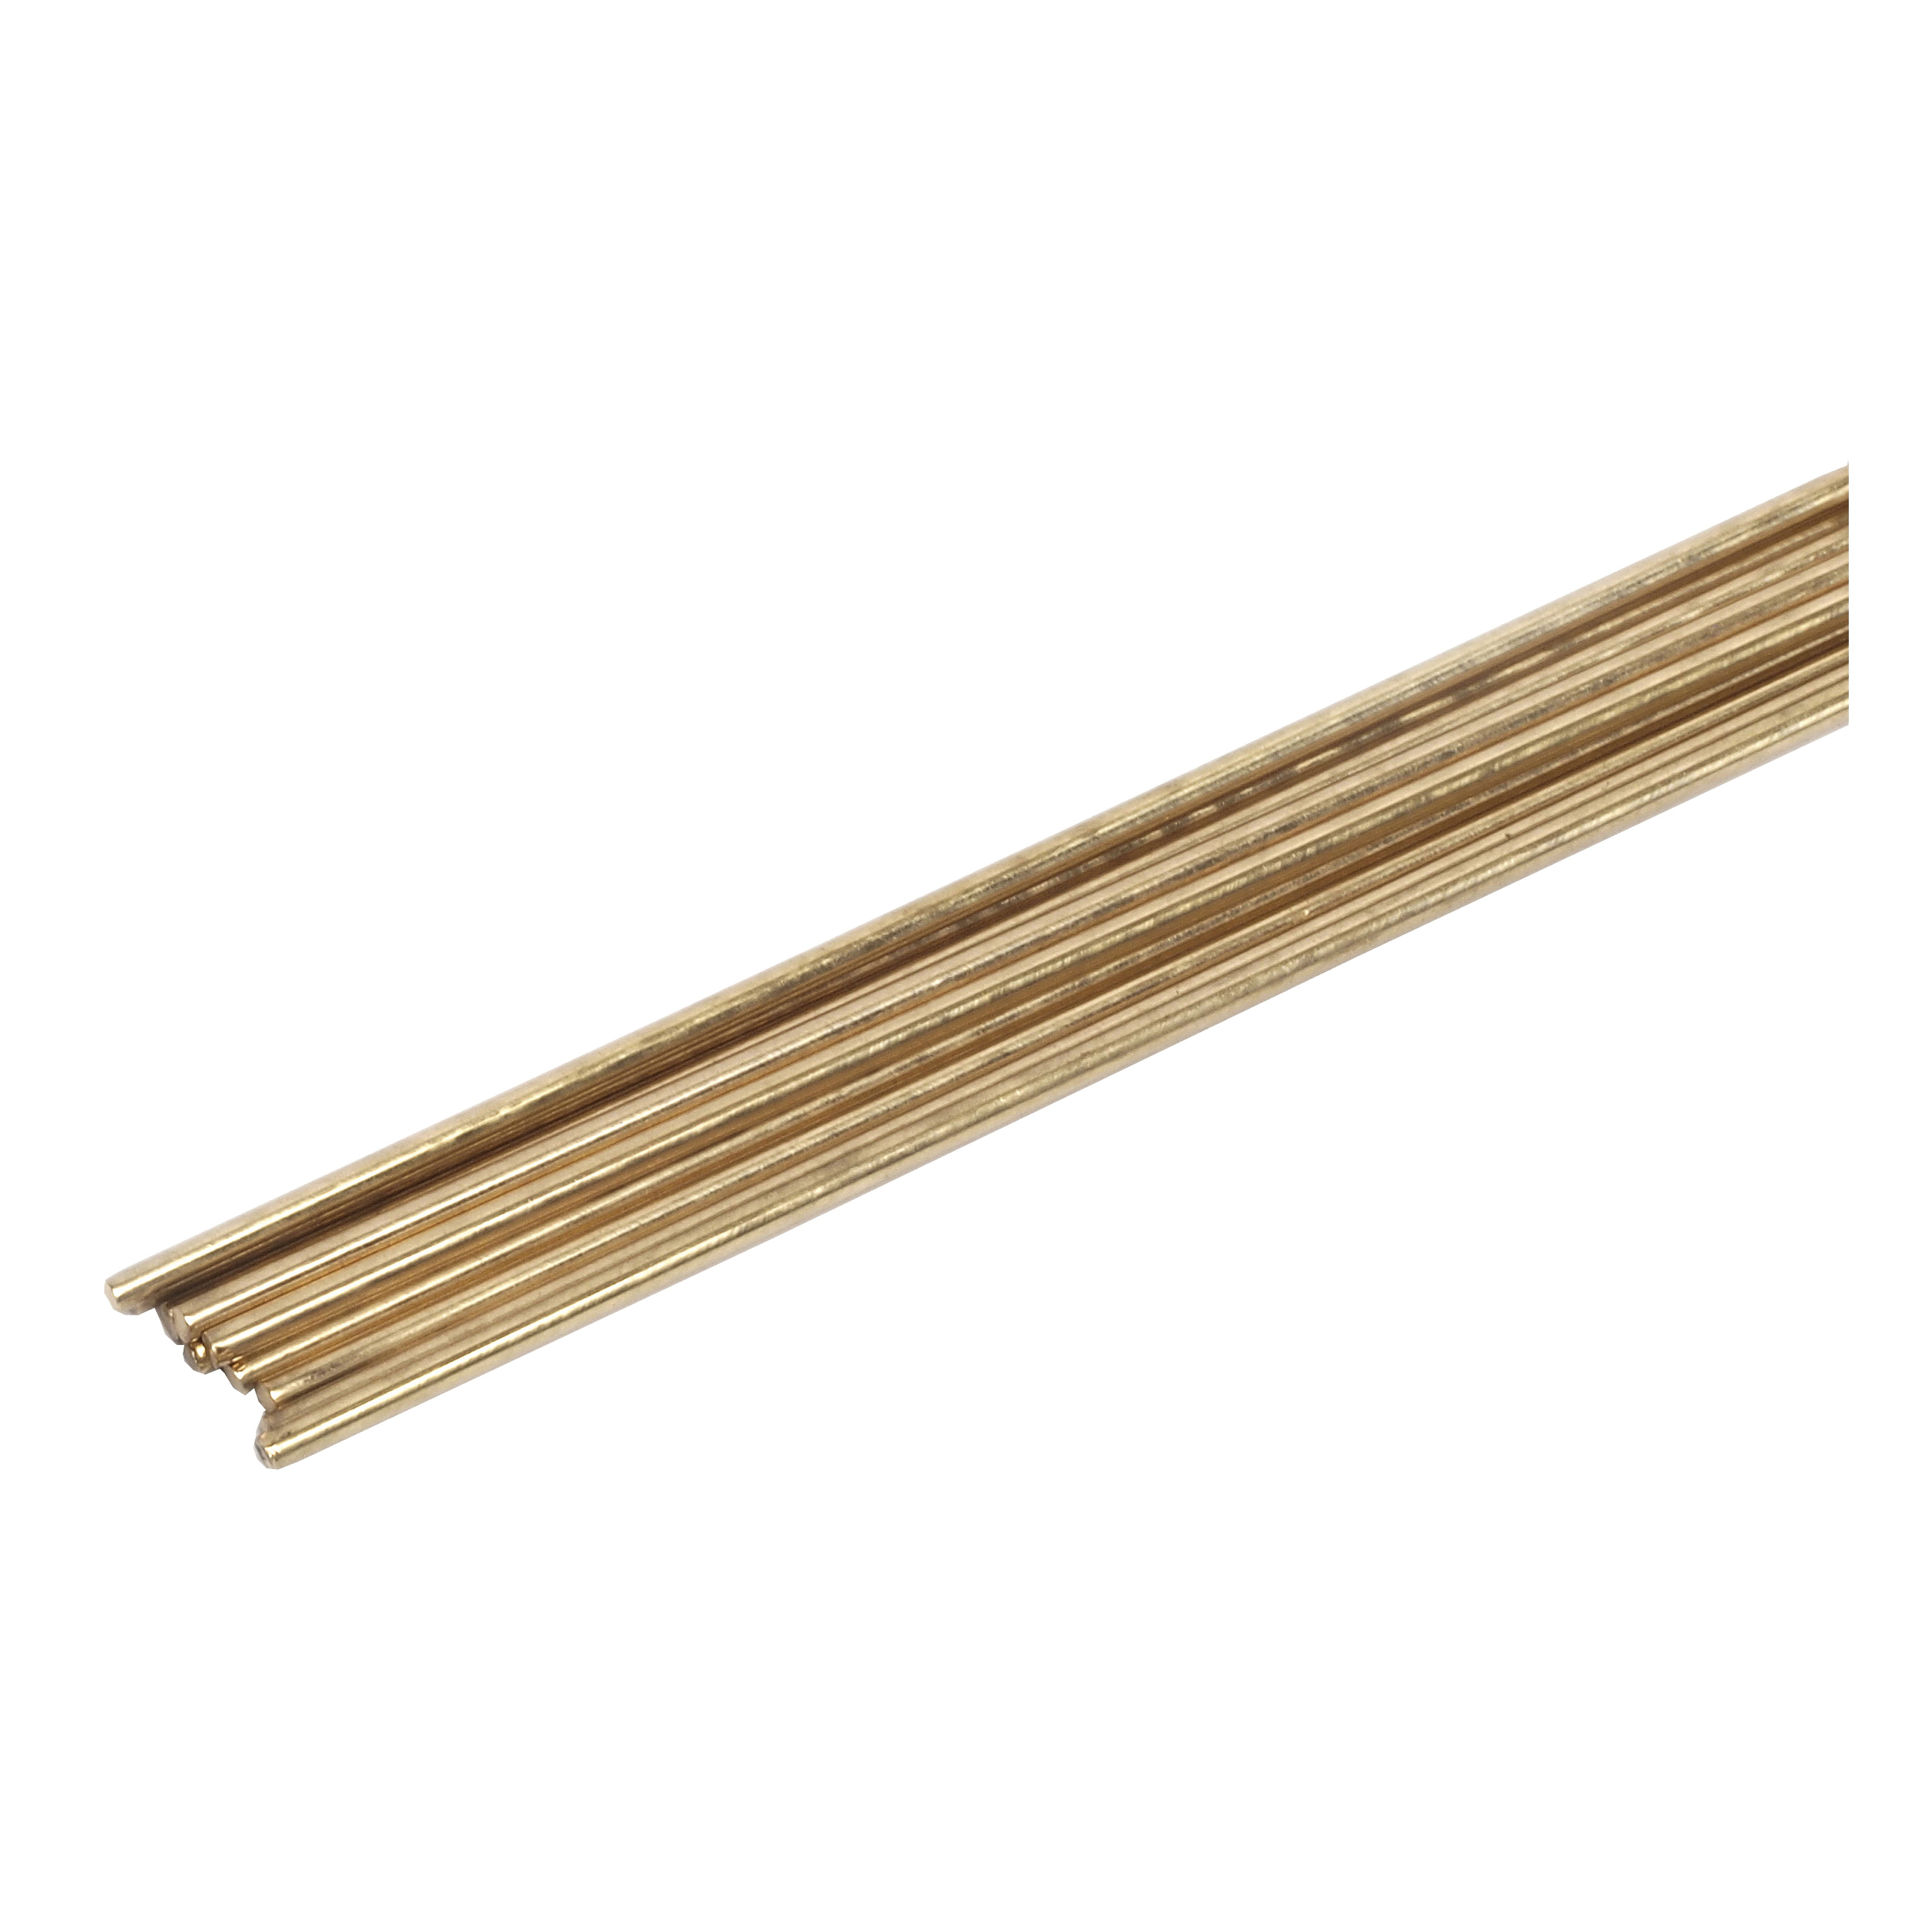 Picture of Forney 48300 Gas Brazing Rod, 3/32 in Dia, 18 in L, Brass